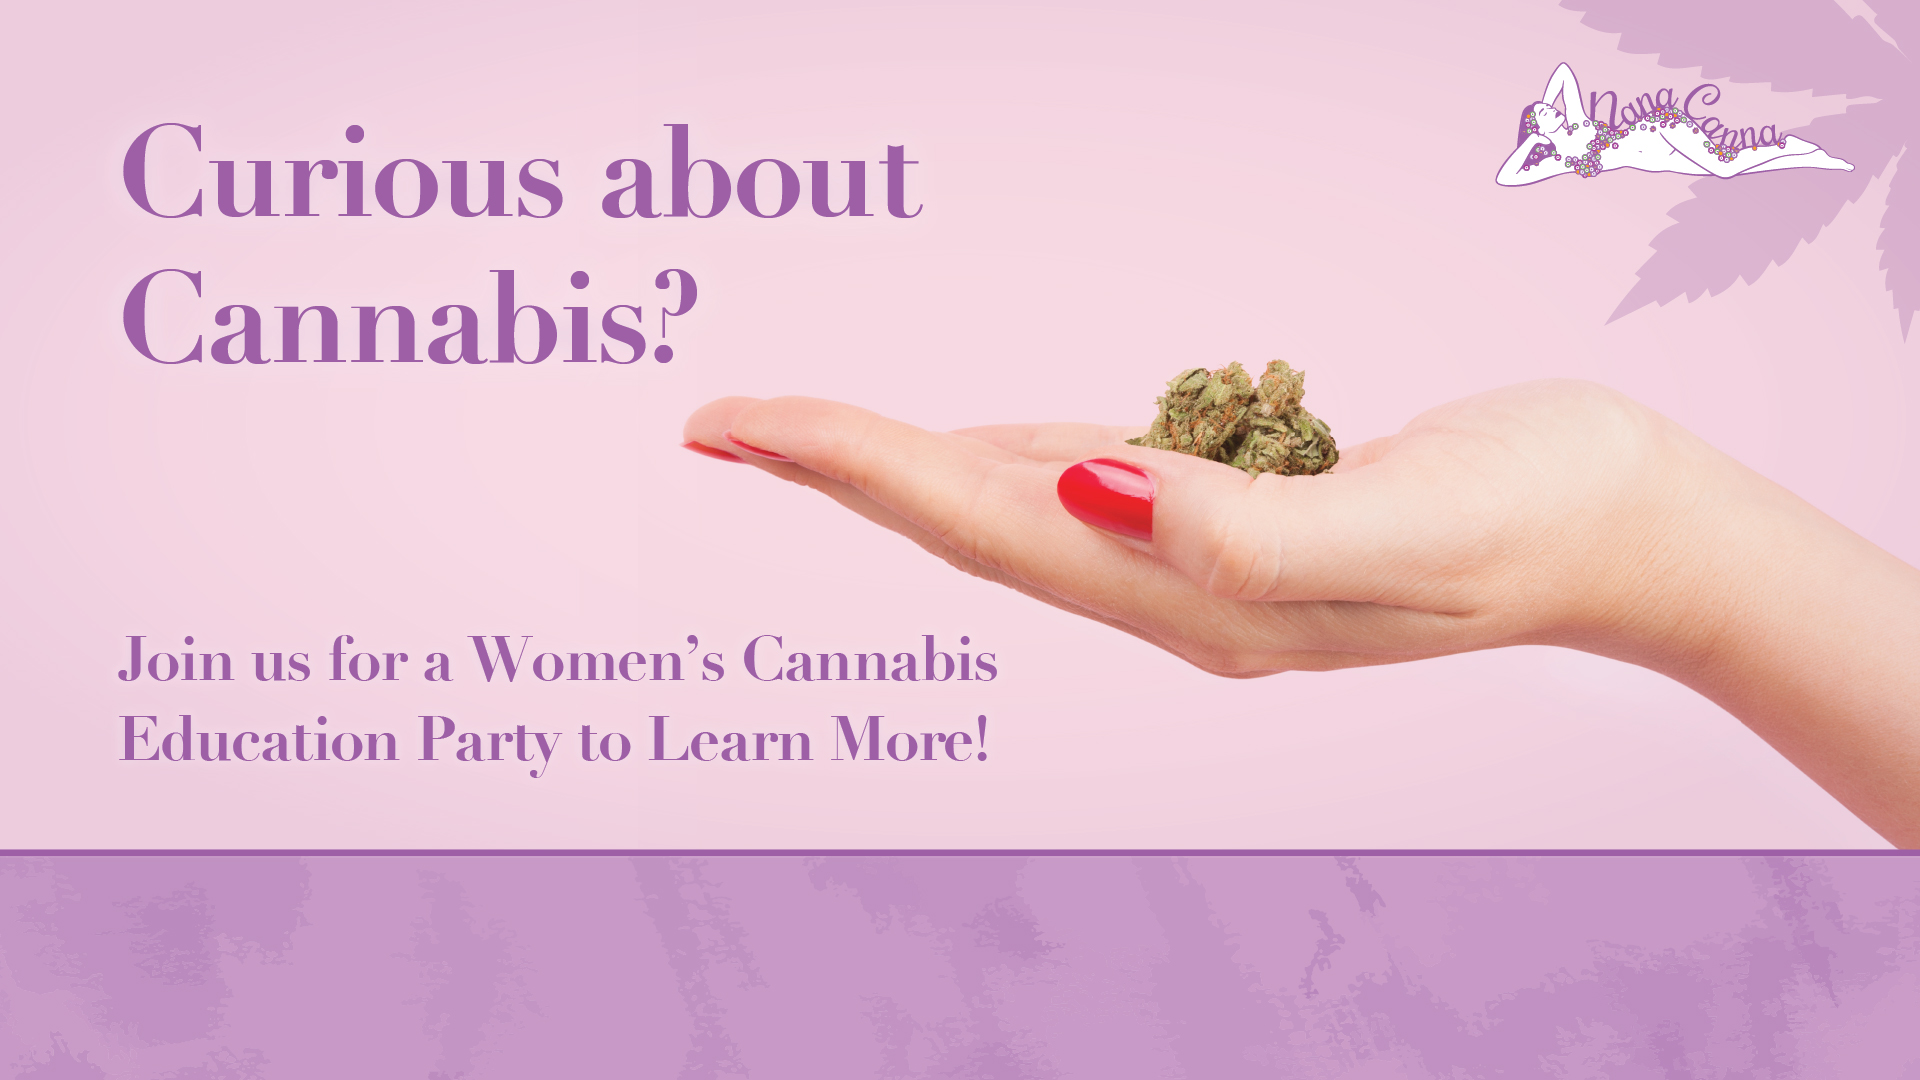 Cannabis Education Party